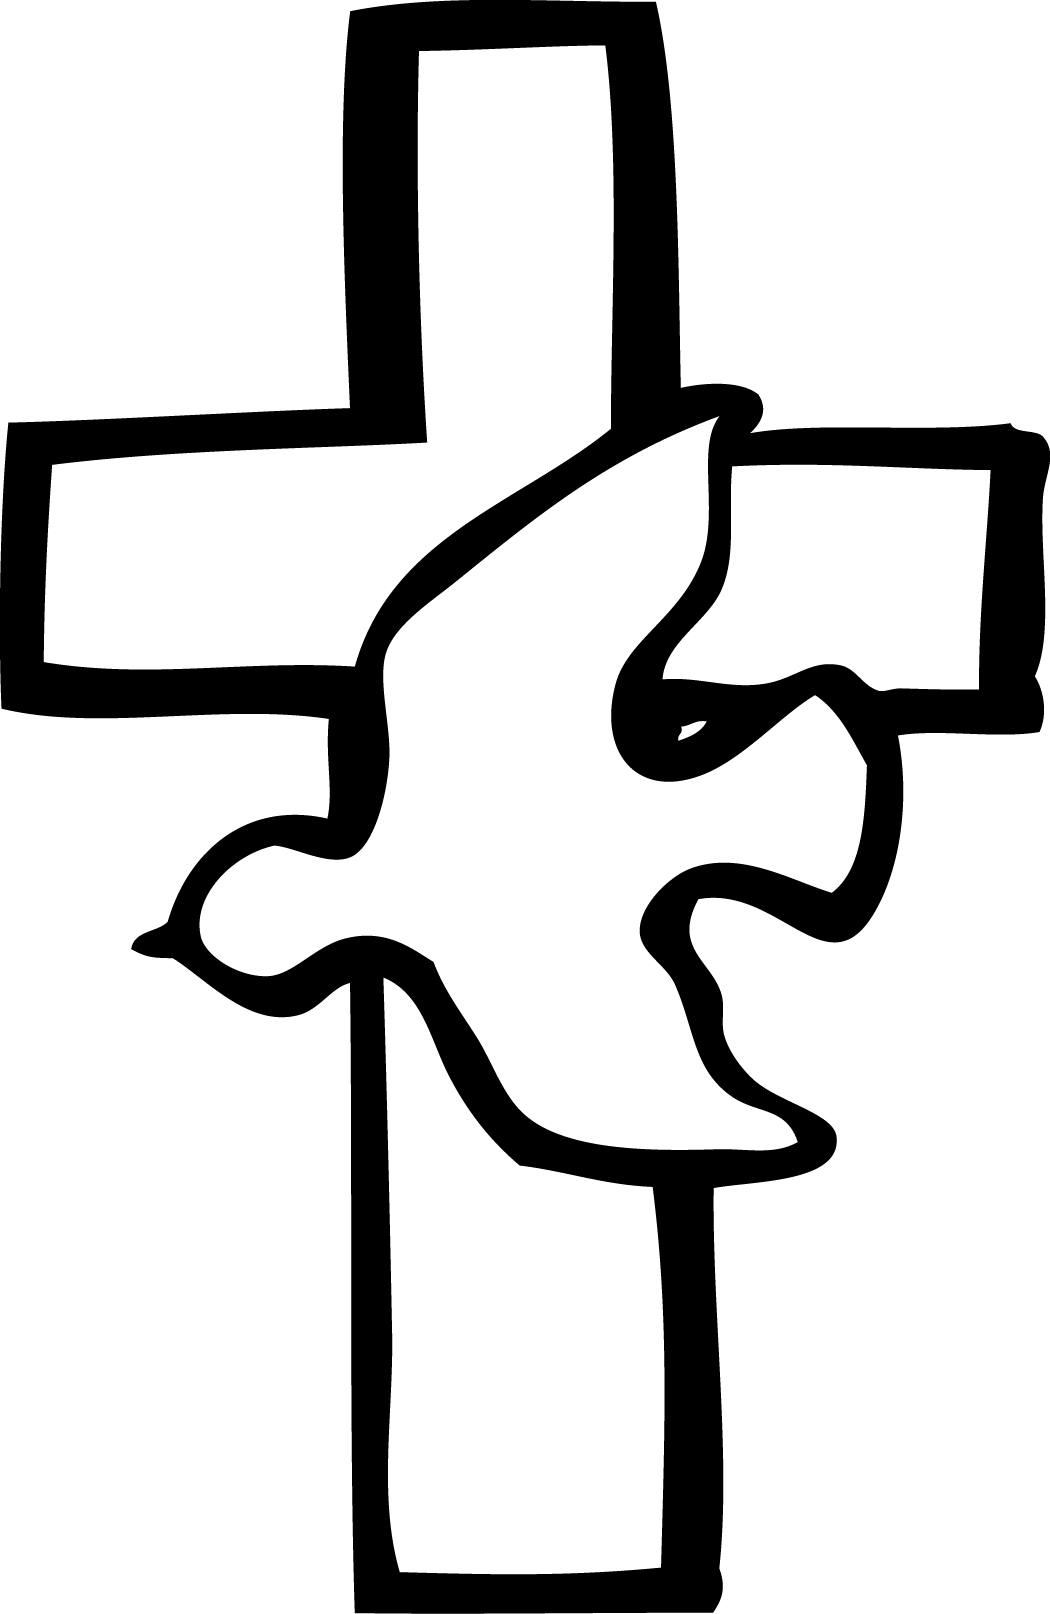 Cross clipart black and white png 4 » Clipart Station.